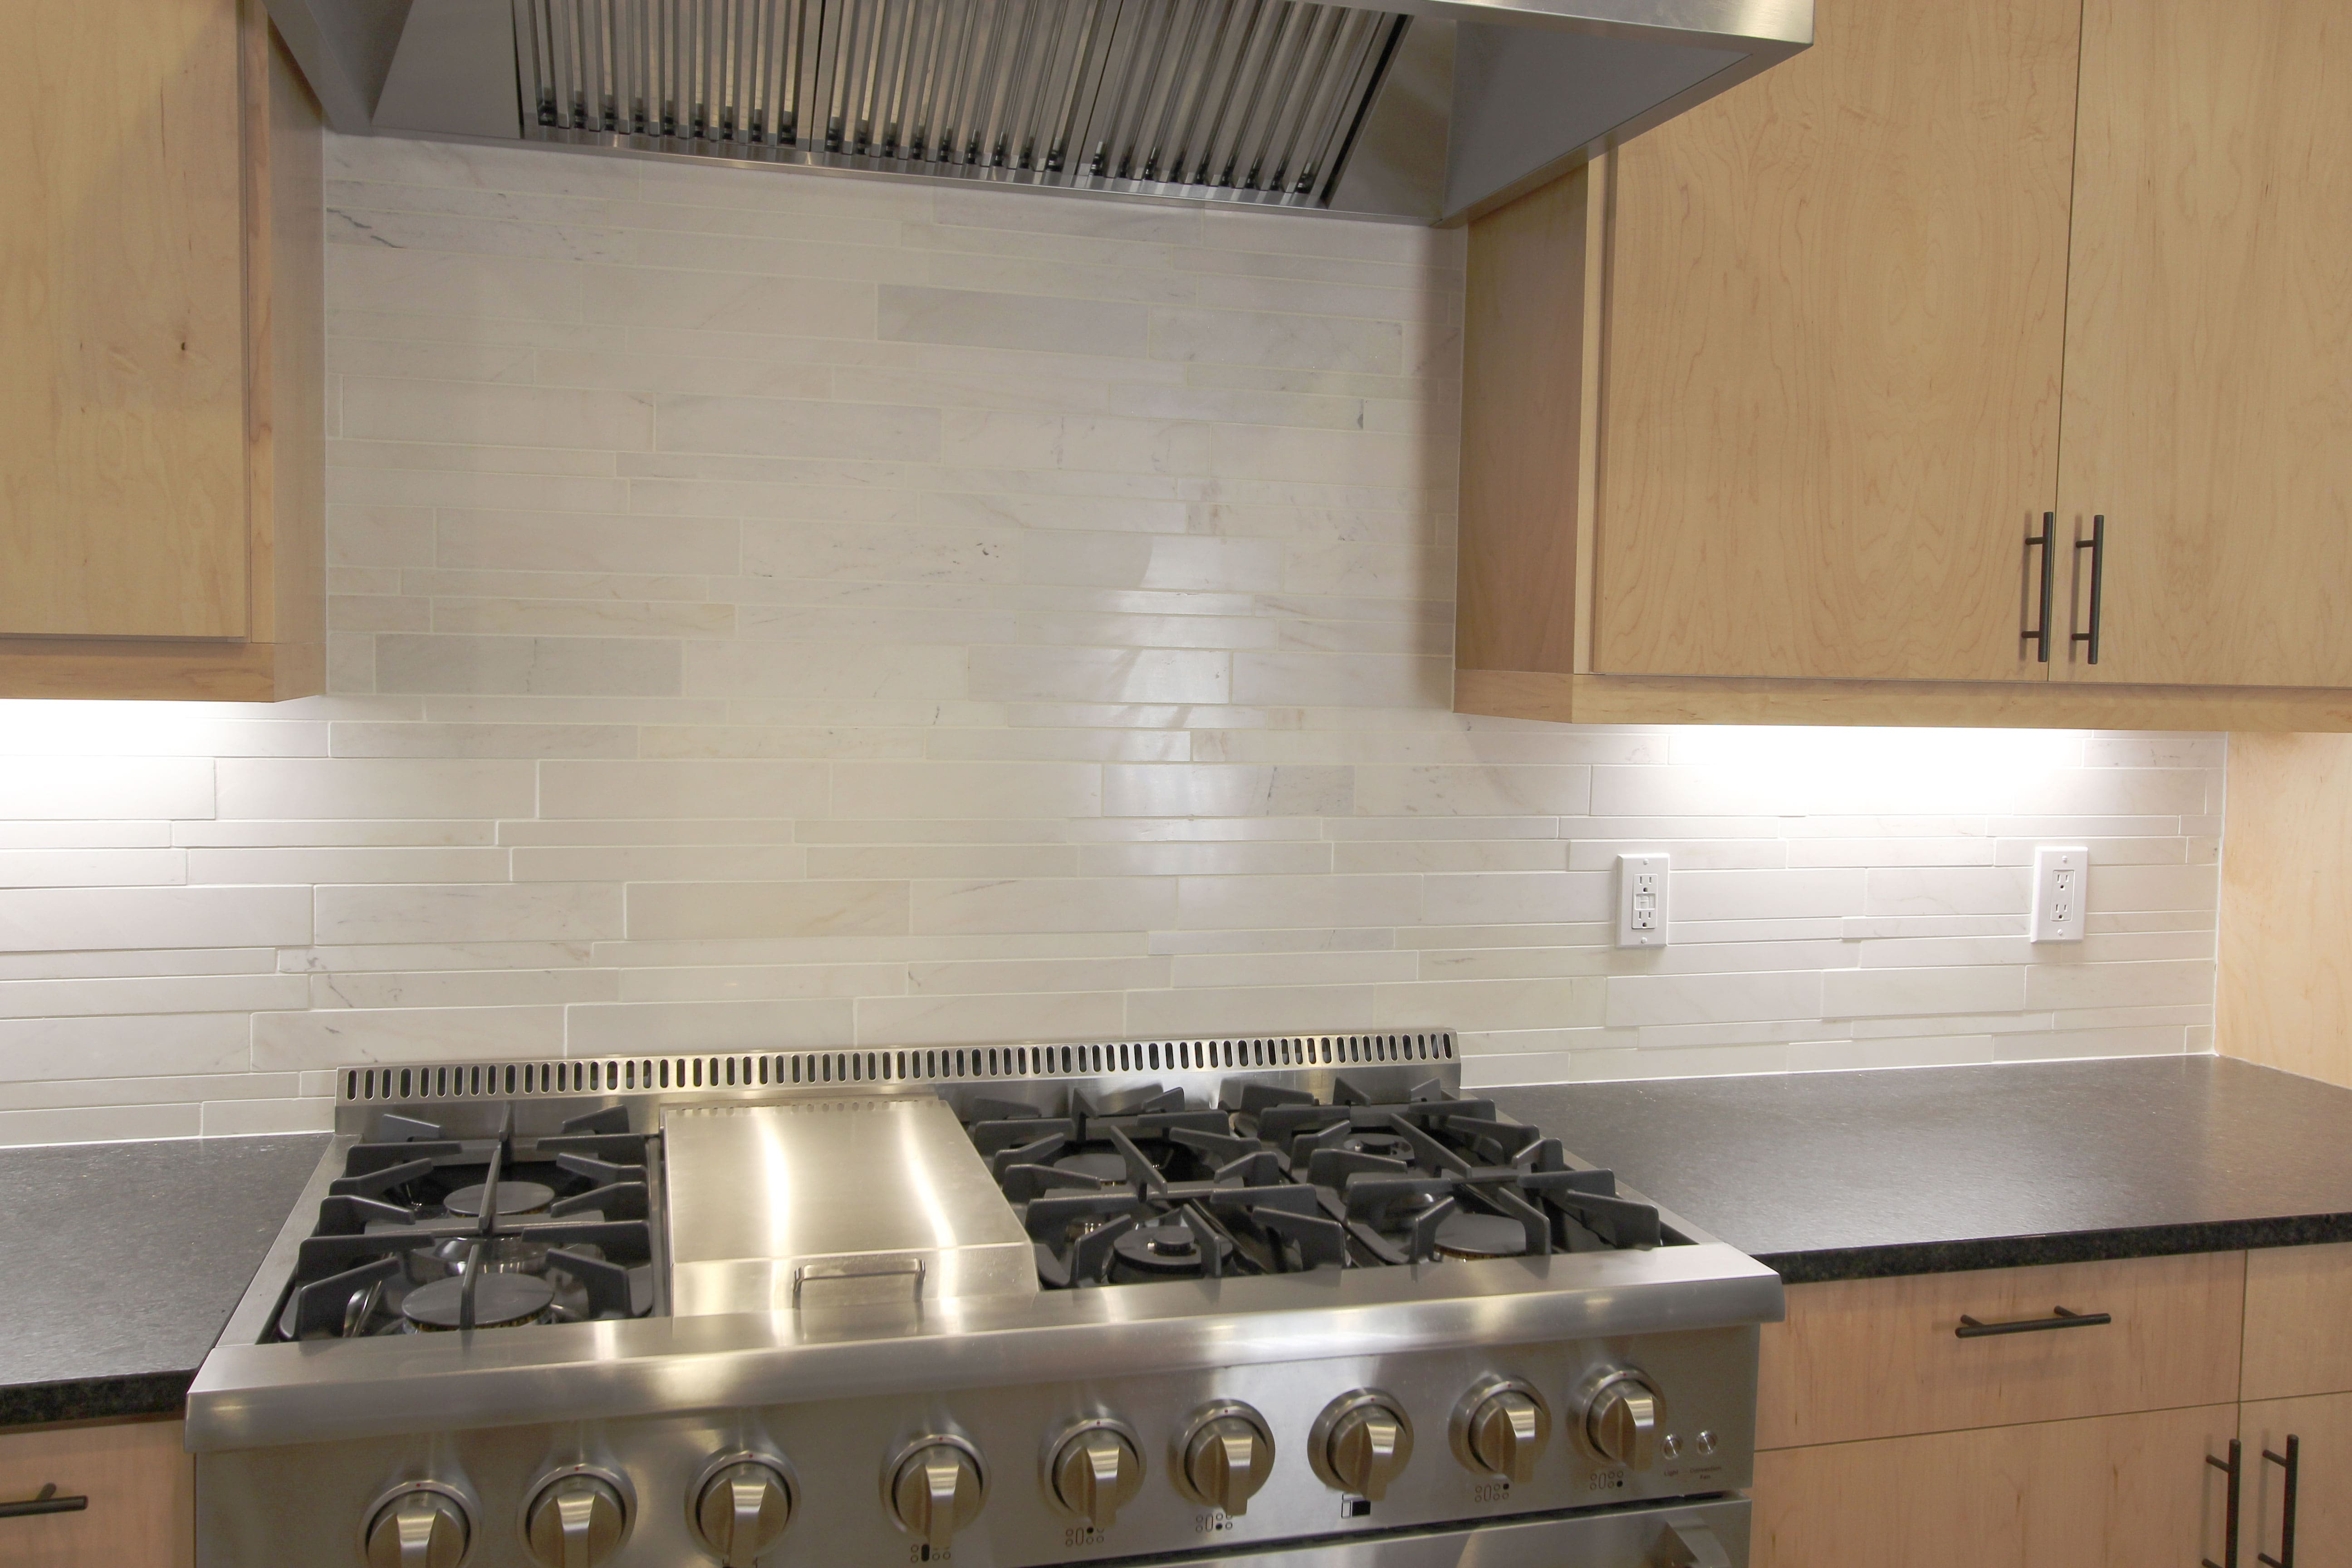 Norstone White Marble Lynia Interlocking Tiles used on a kitchen backsplash set against a large 6 burner stainless steel range and vent hood